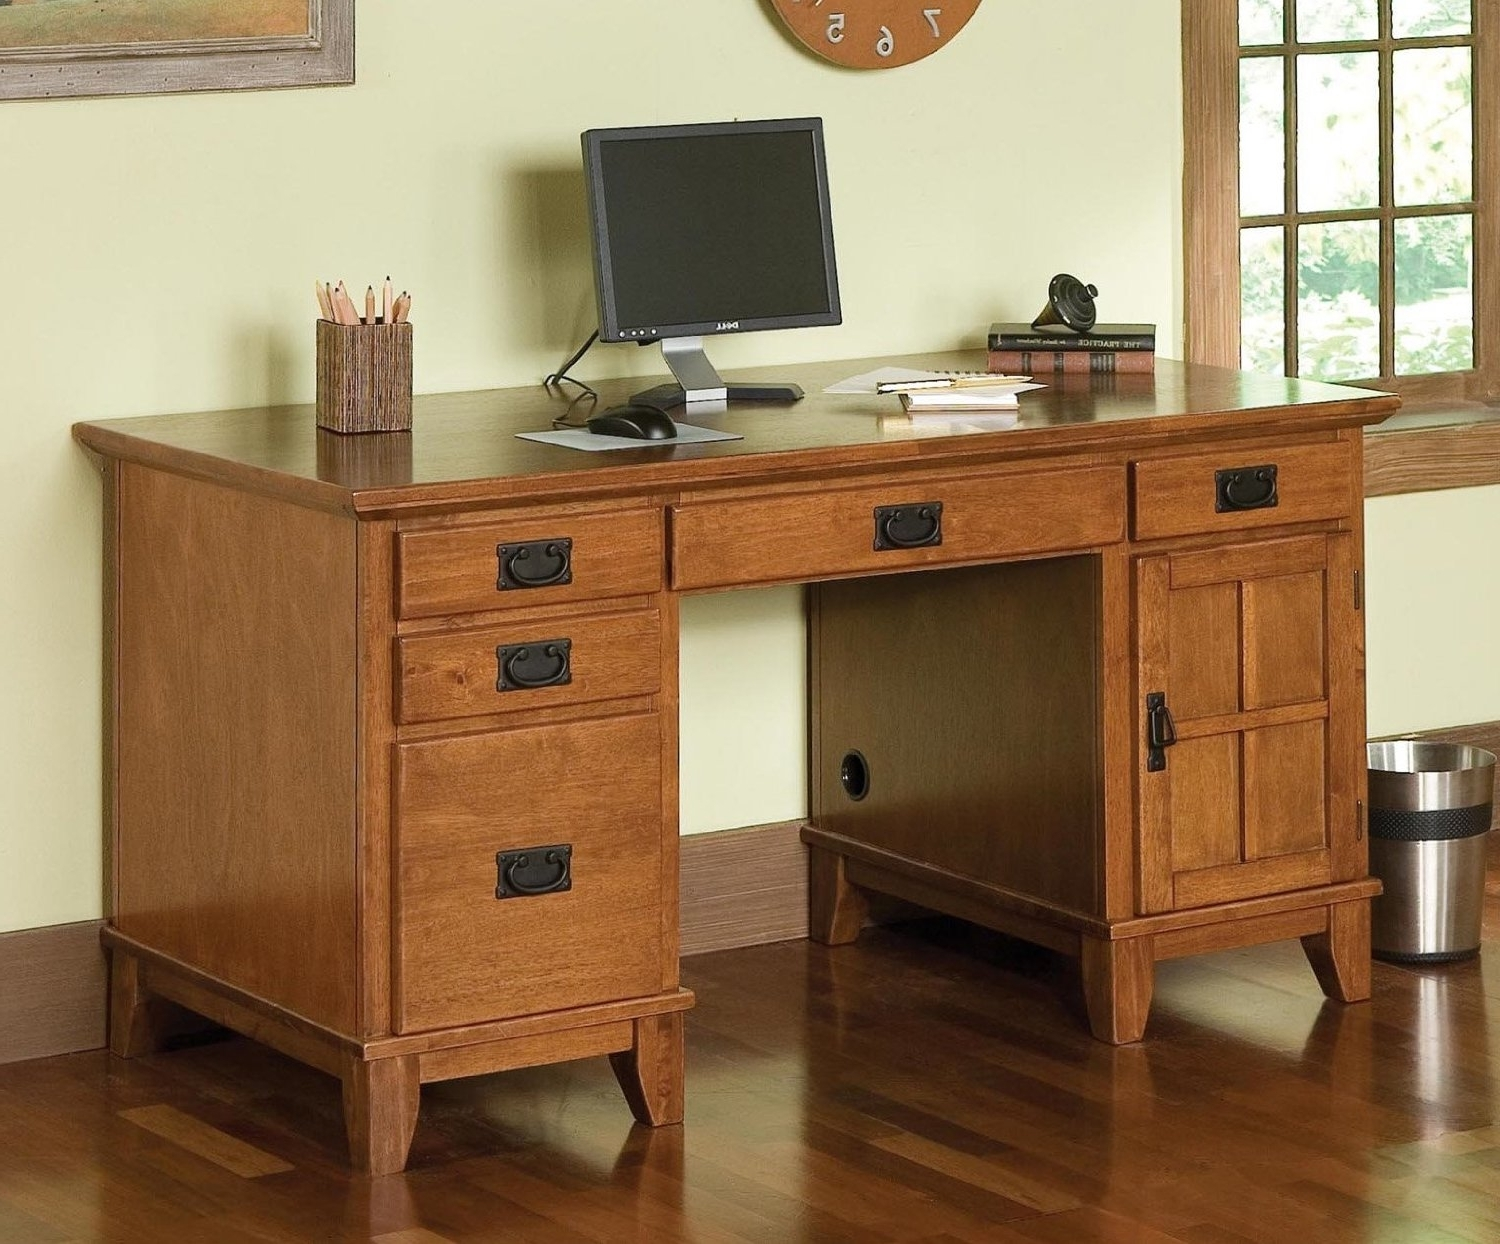 Computer Desks With Drawers Within Most Up To Date Solid Wood Computer Desk Design — Home Design Ideas : Build A (View 18 of 20)